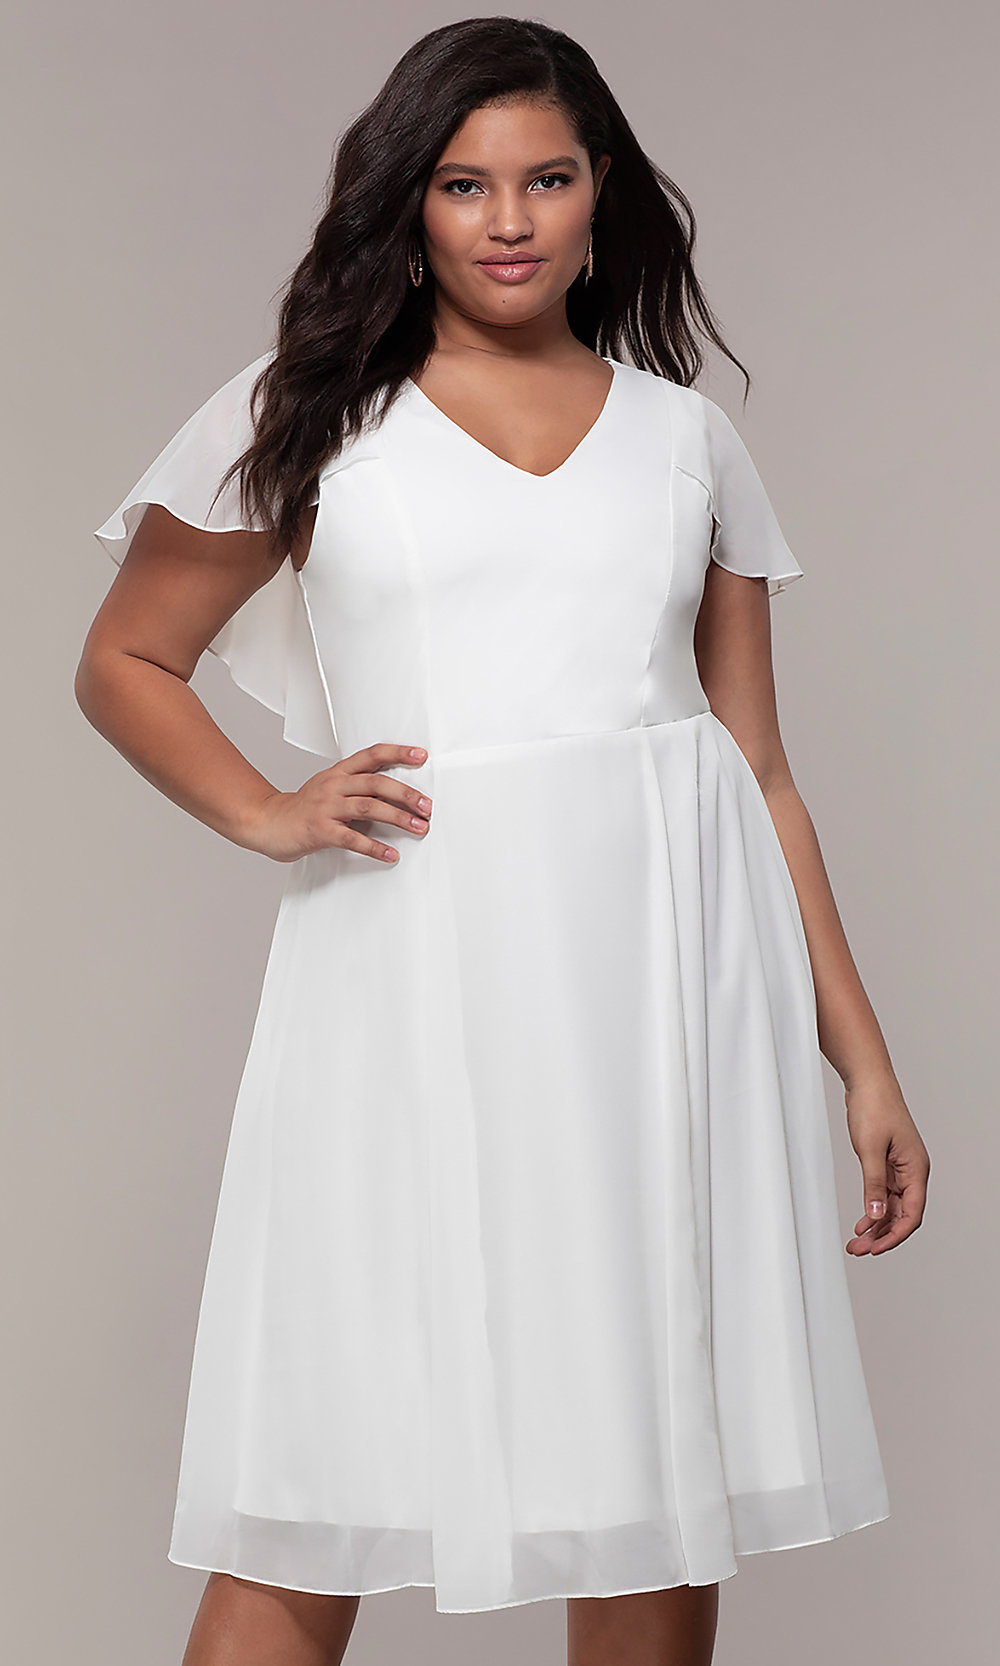 White Chiffon Plus-Size Knee-Length Party Dress